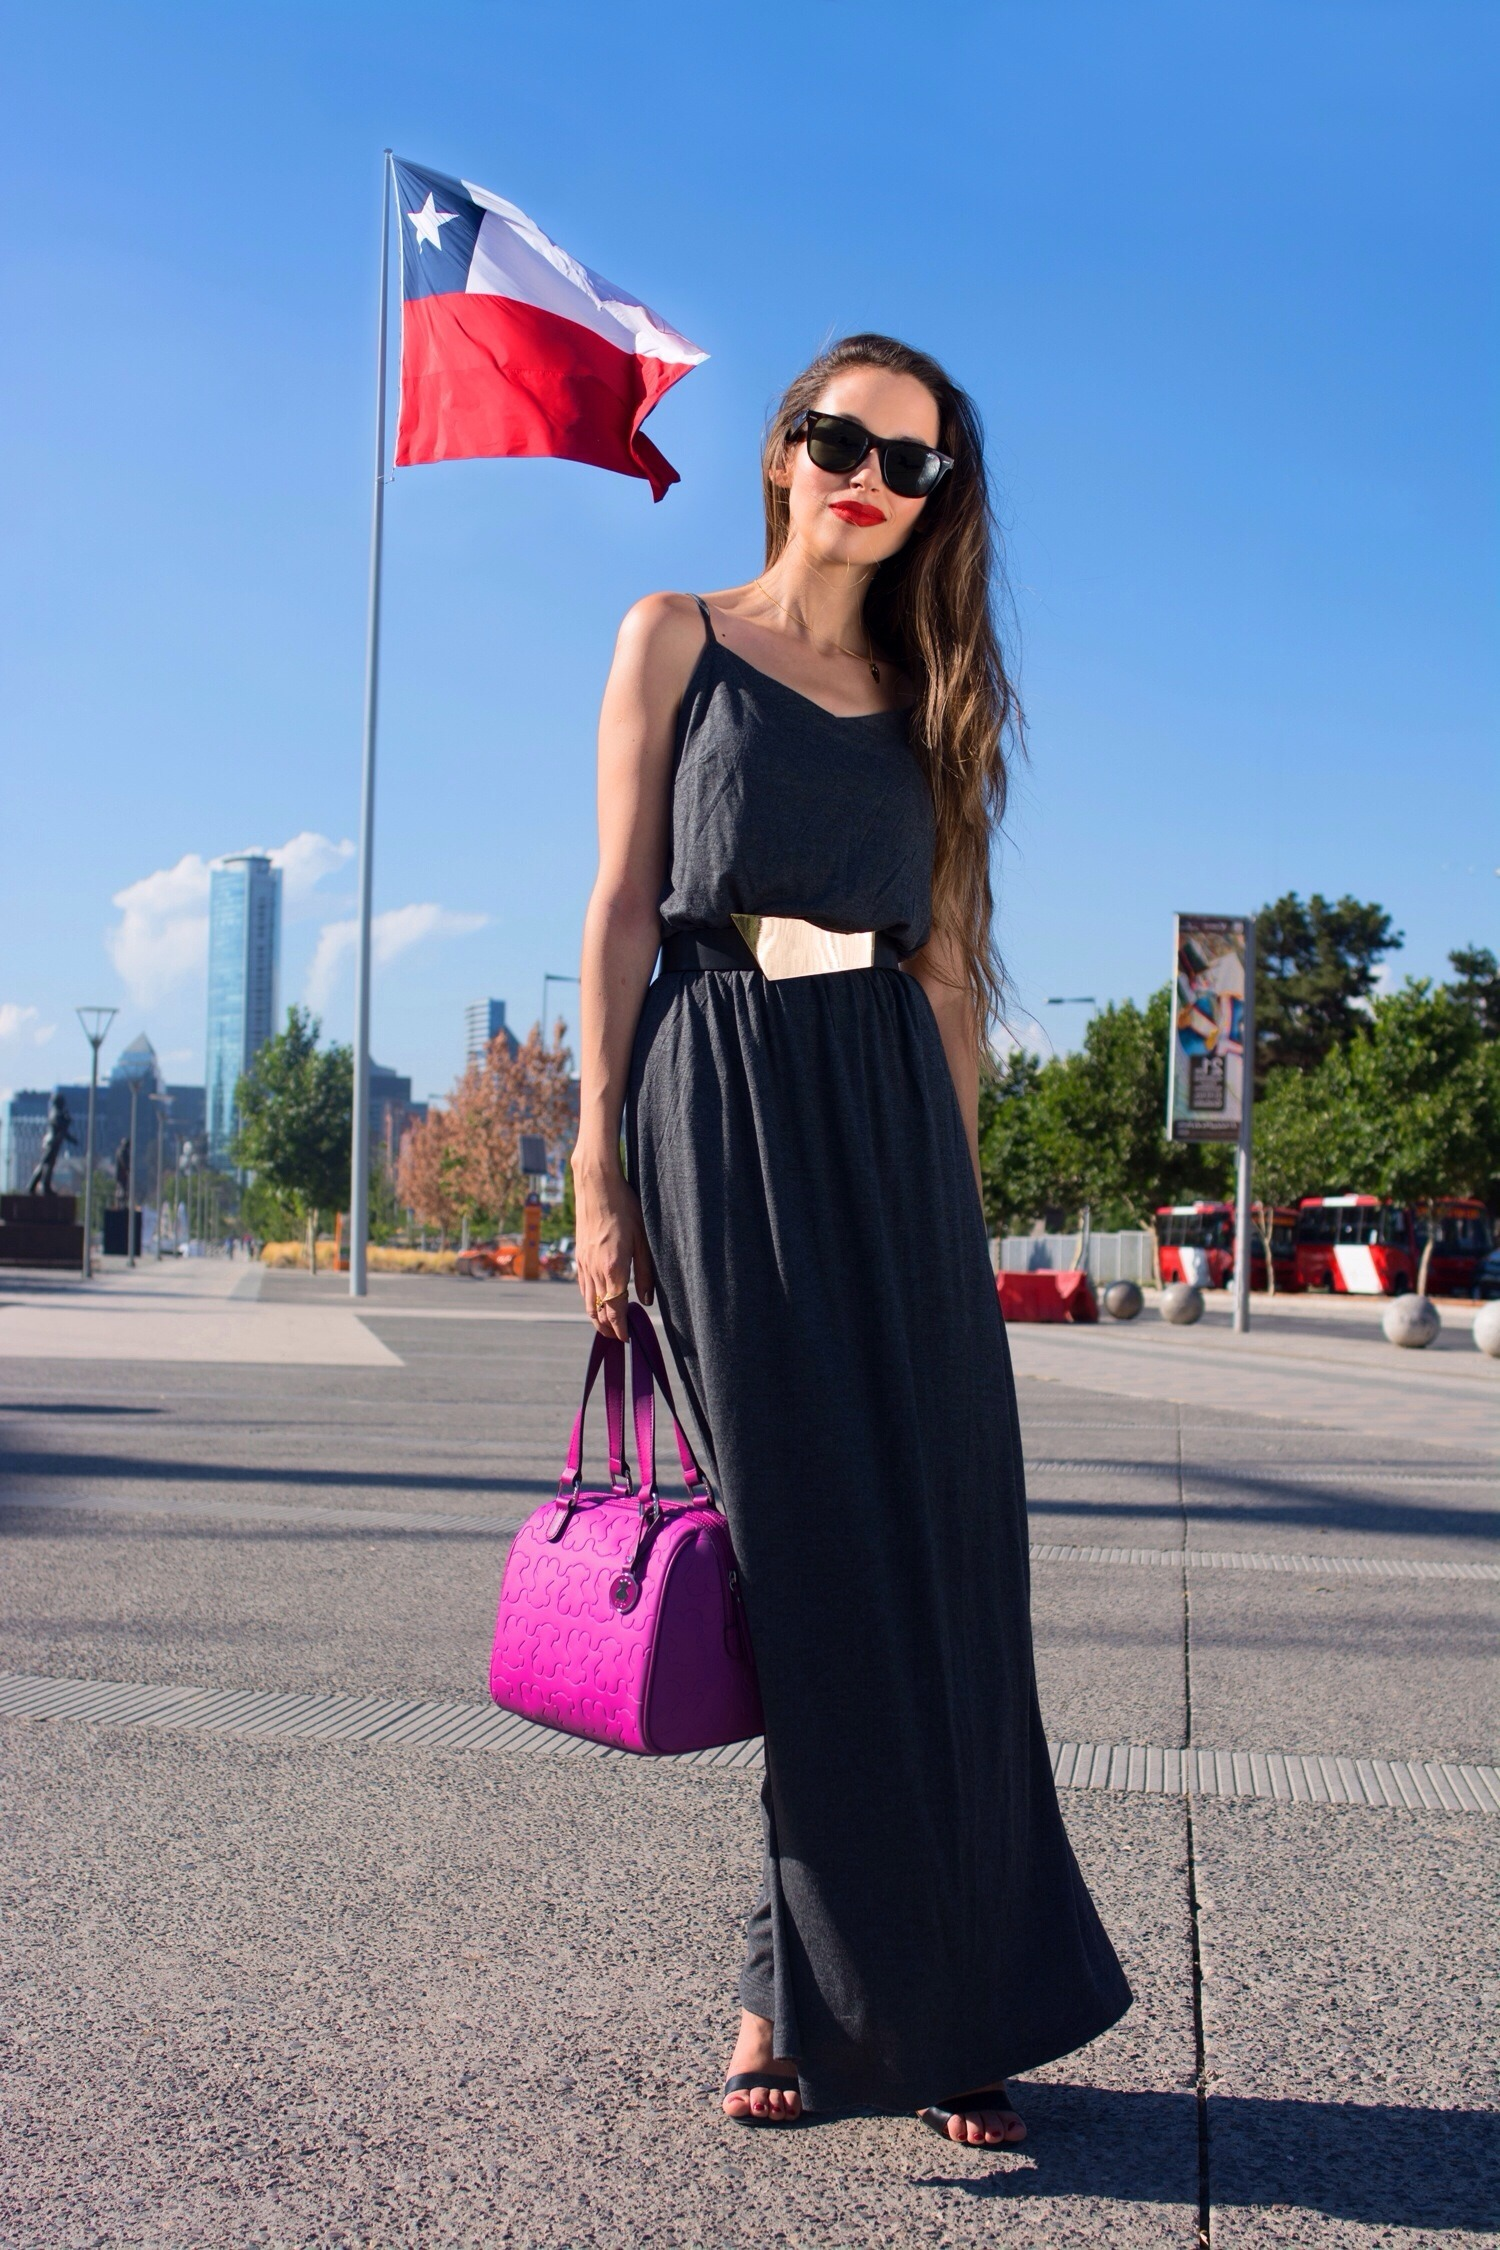 Nicole Putz - La blogger mas fashion de Chile